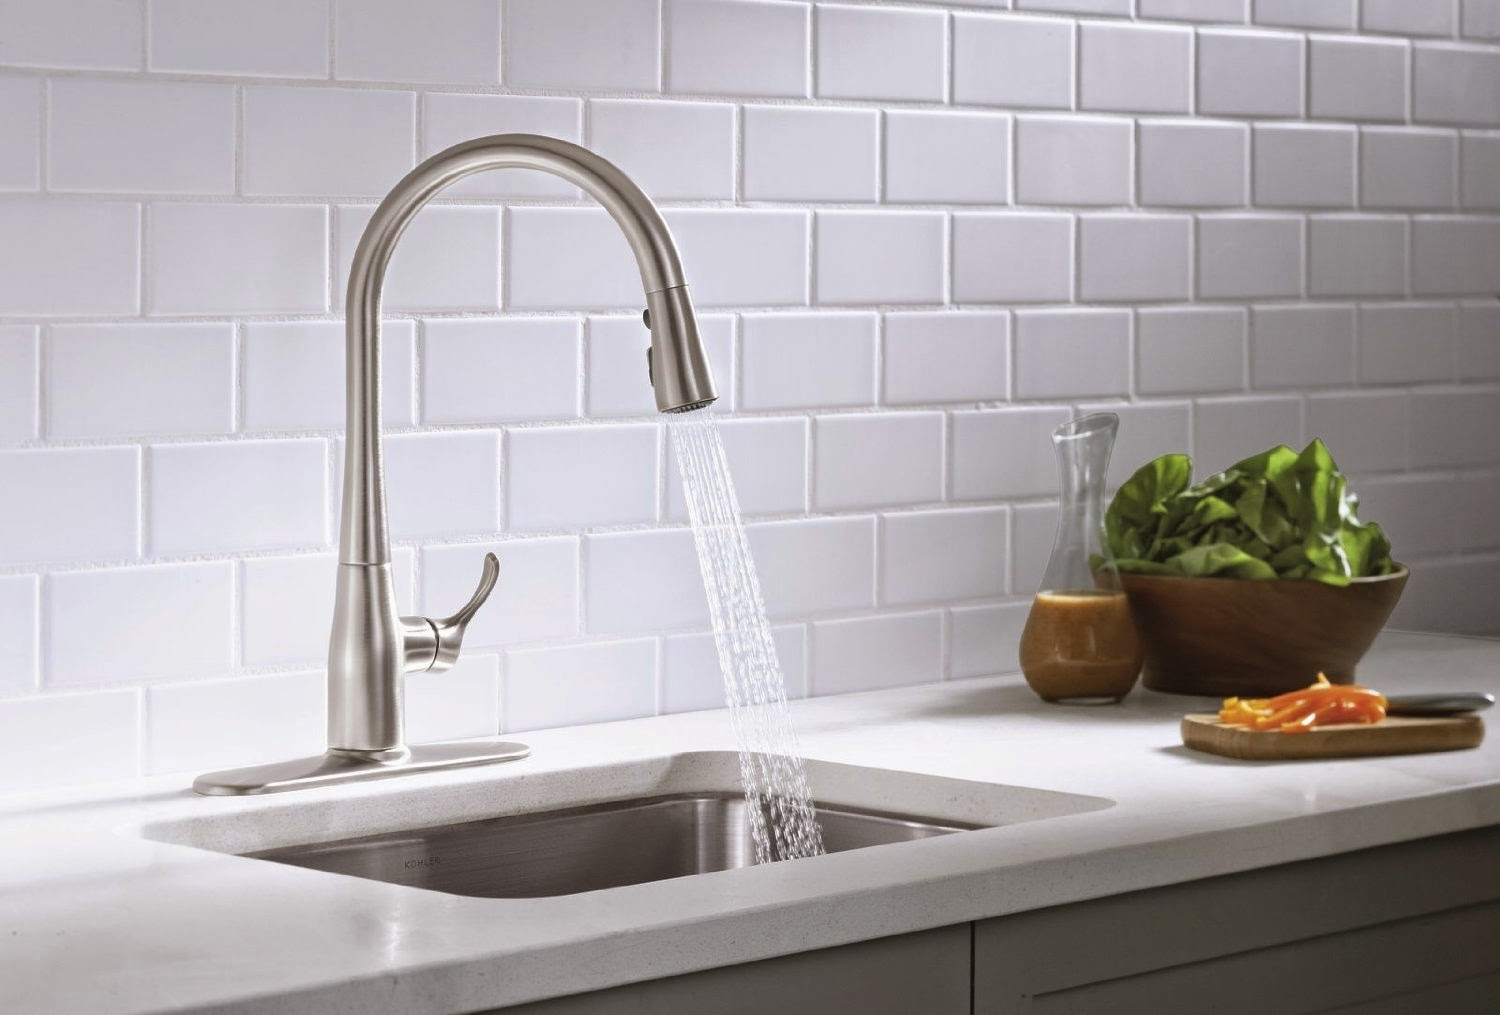 kohler k cp simplice single hole single hole kitchen faucet KOHLER K CP Simplice Single Hole Pull down Kitchen Faucet Picture 4